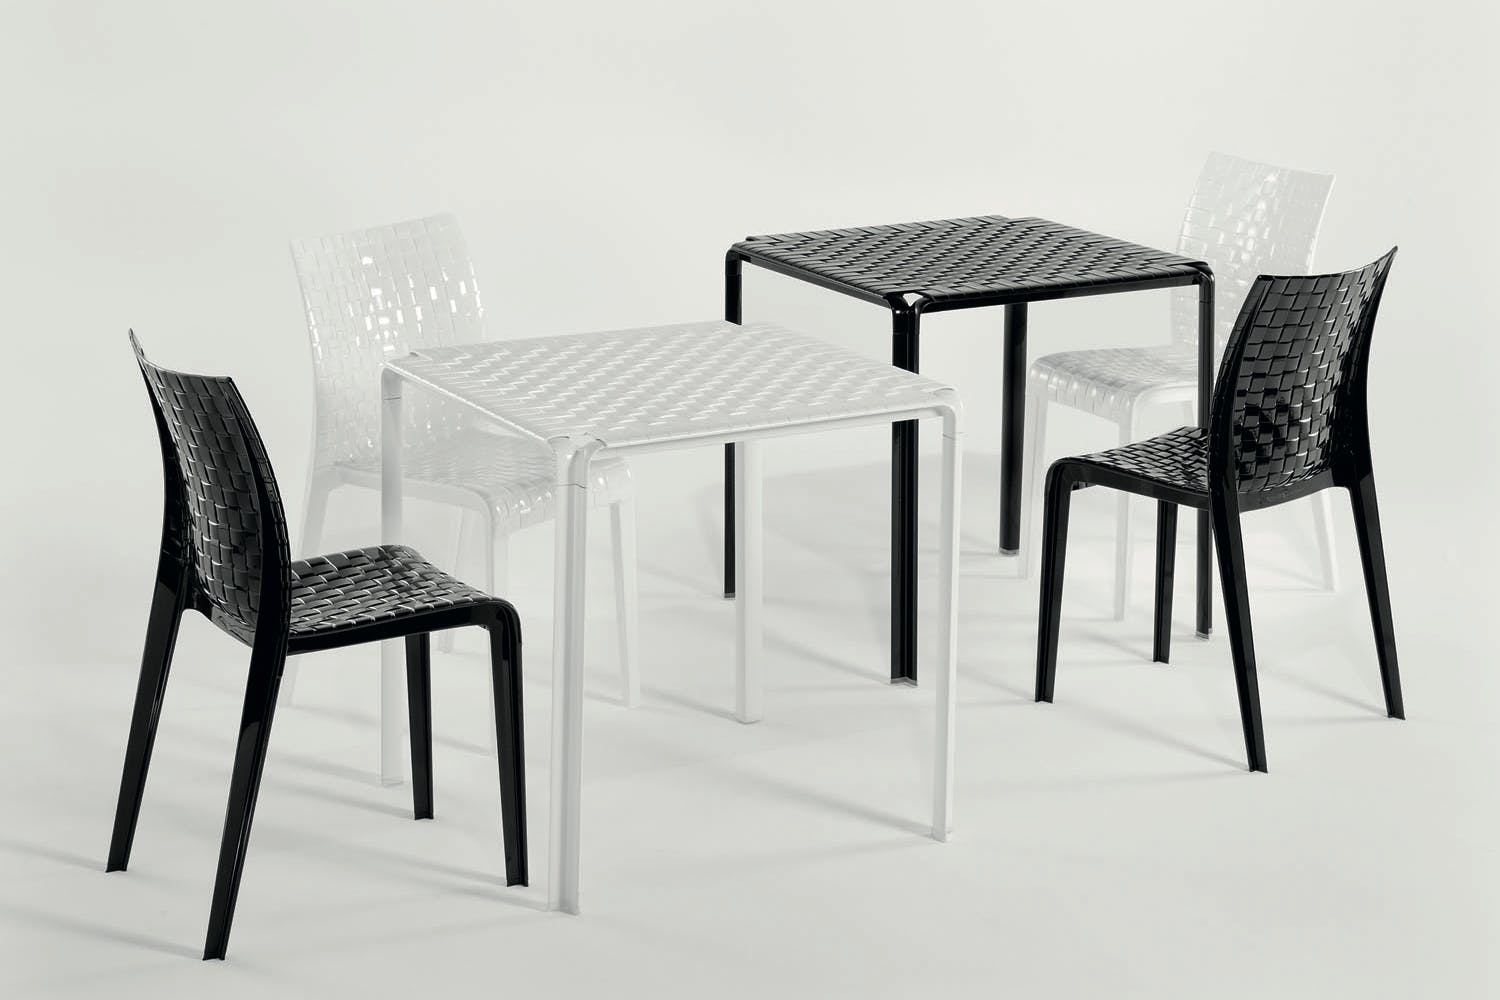 ami ami table by tokujin yoshioka for kartell  space furniture - share